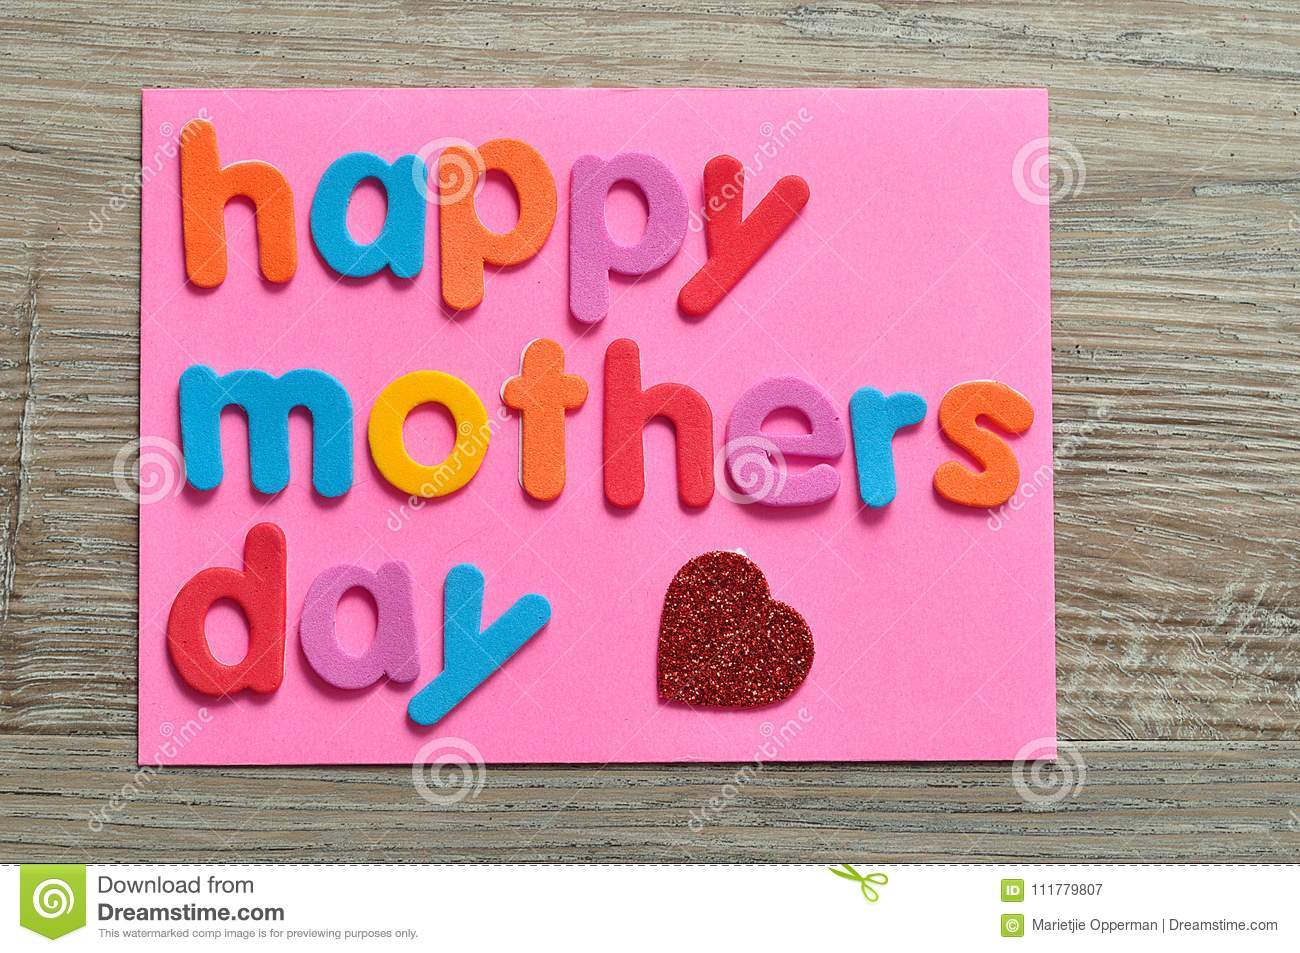 Happy mothers day on a pink note with a red heart